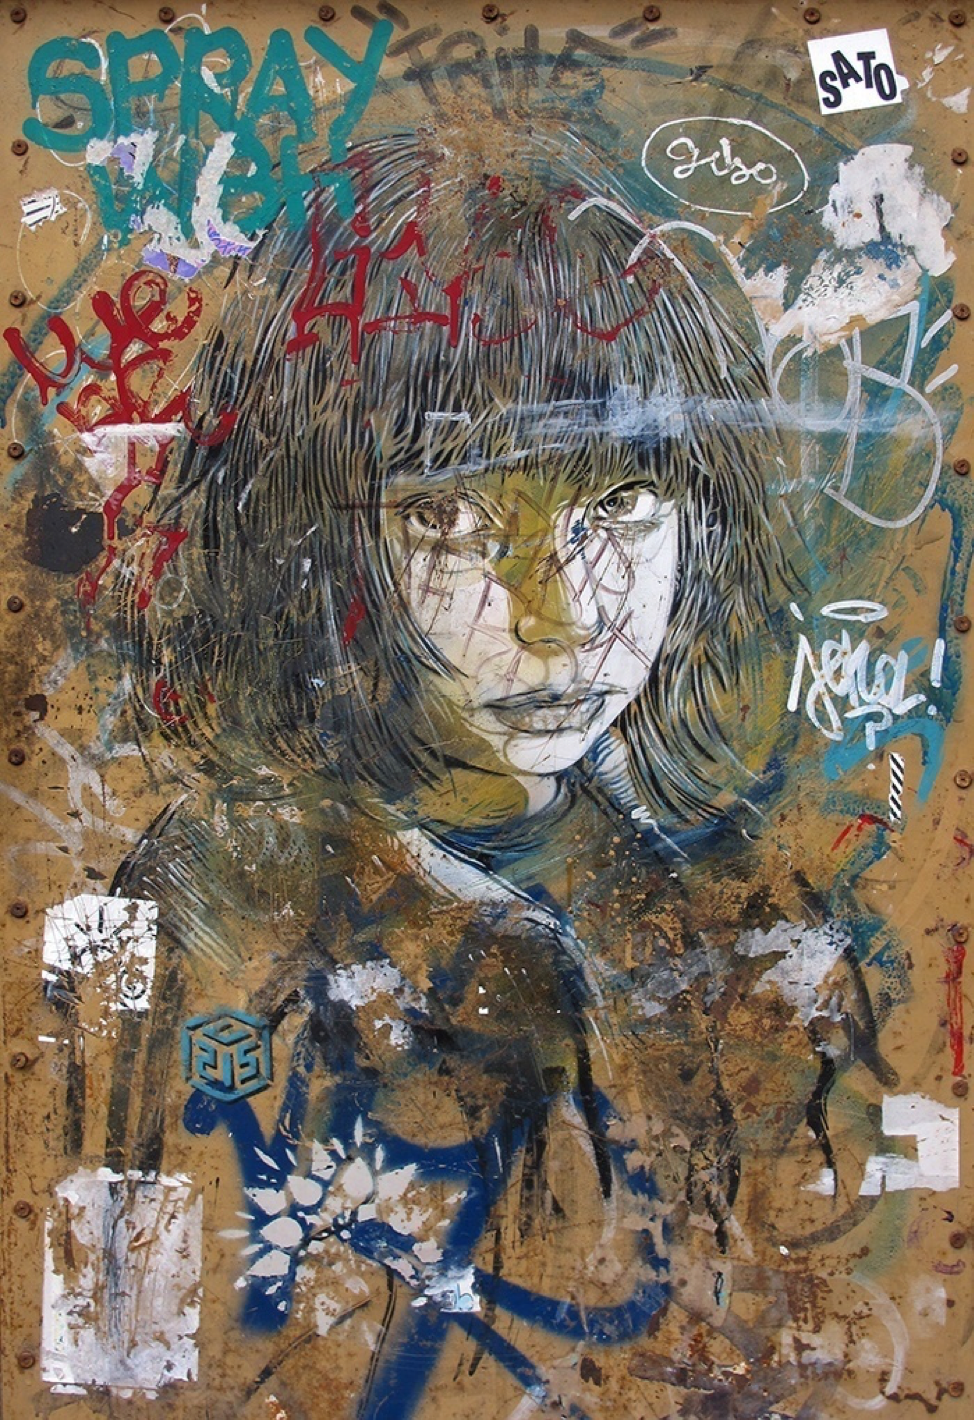 C215 Annotated, Barcelona 2016, Photograph by Marshall Soules